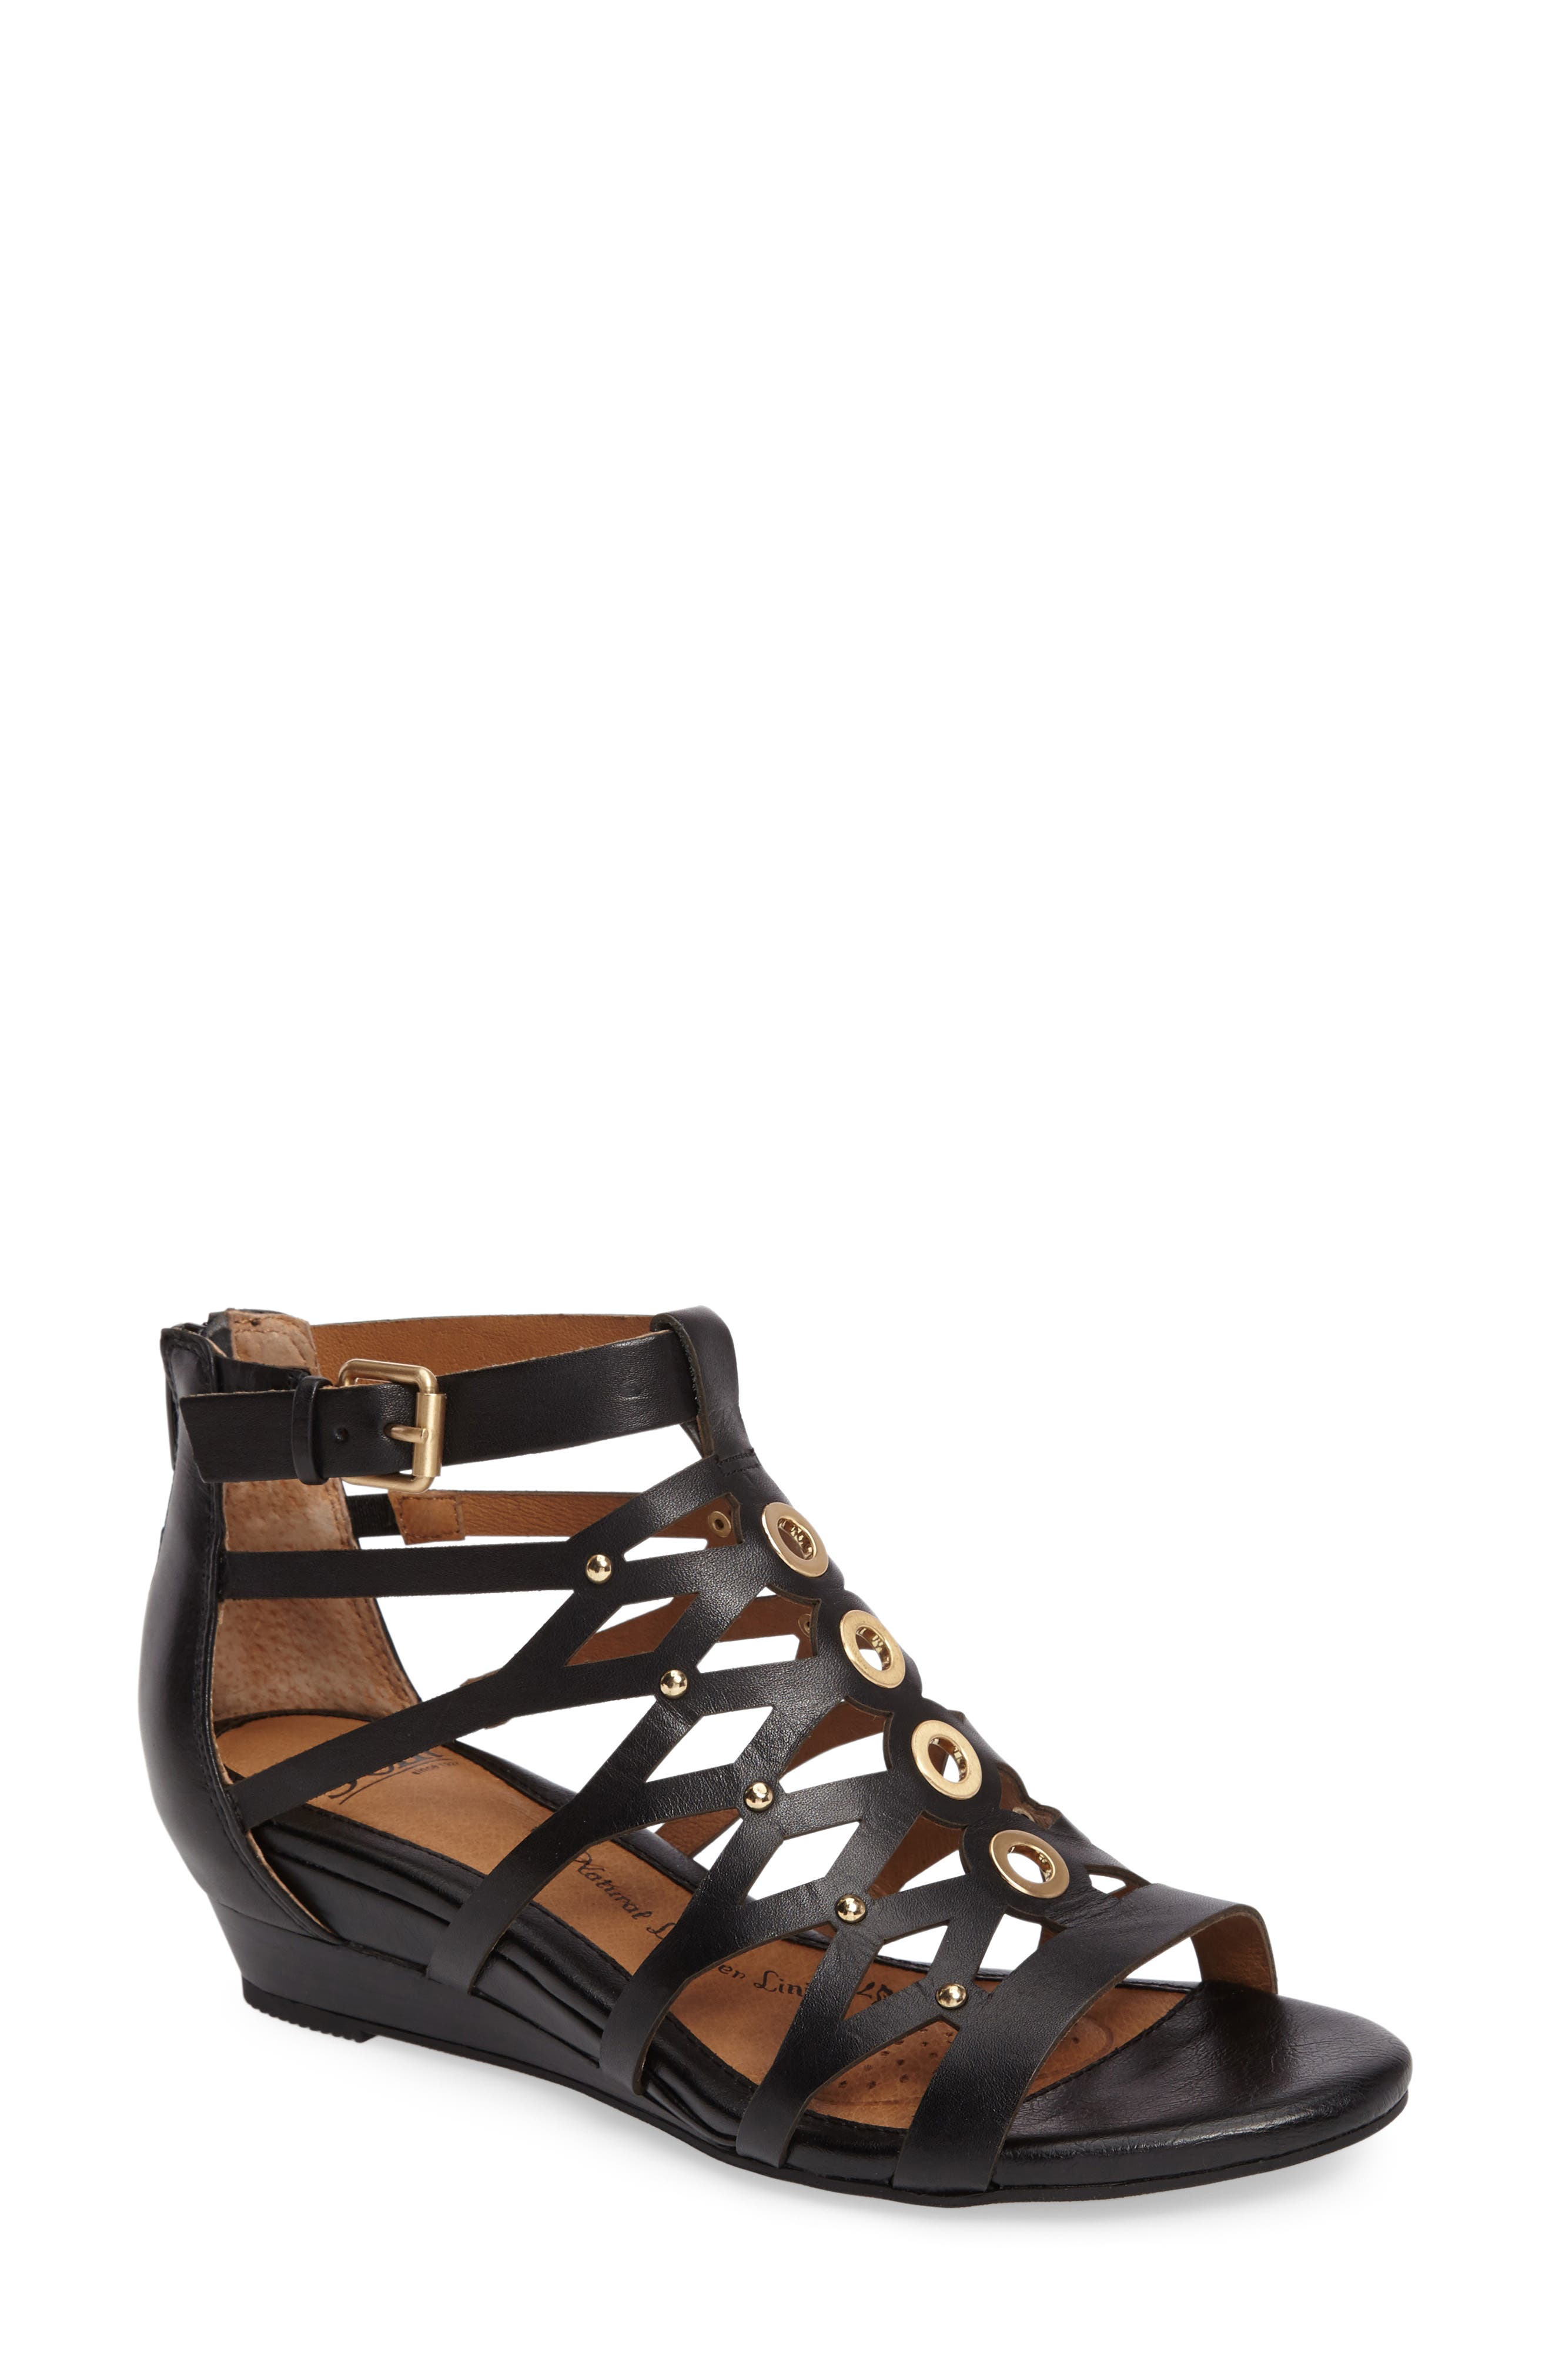 Rosalyn Wedge Sandal,                         Main,                         color, 001